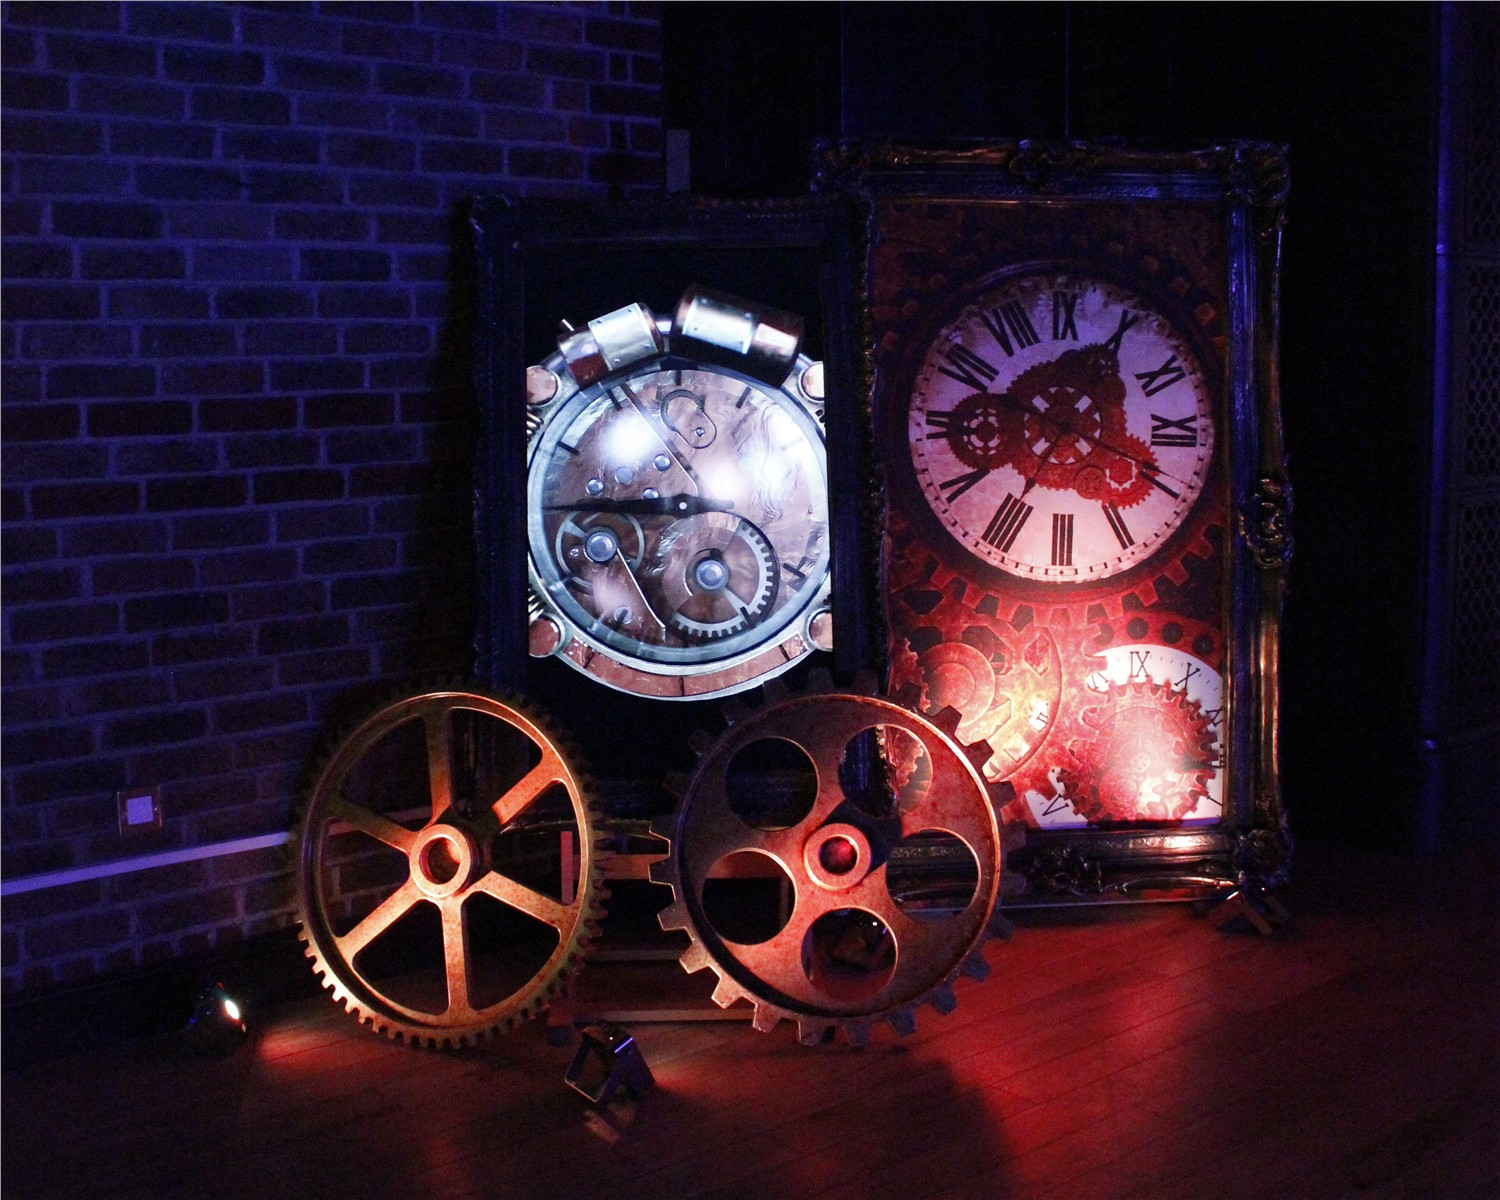 Steampunk display and TV